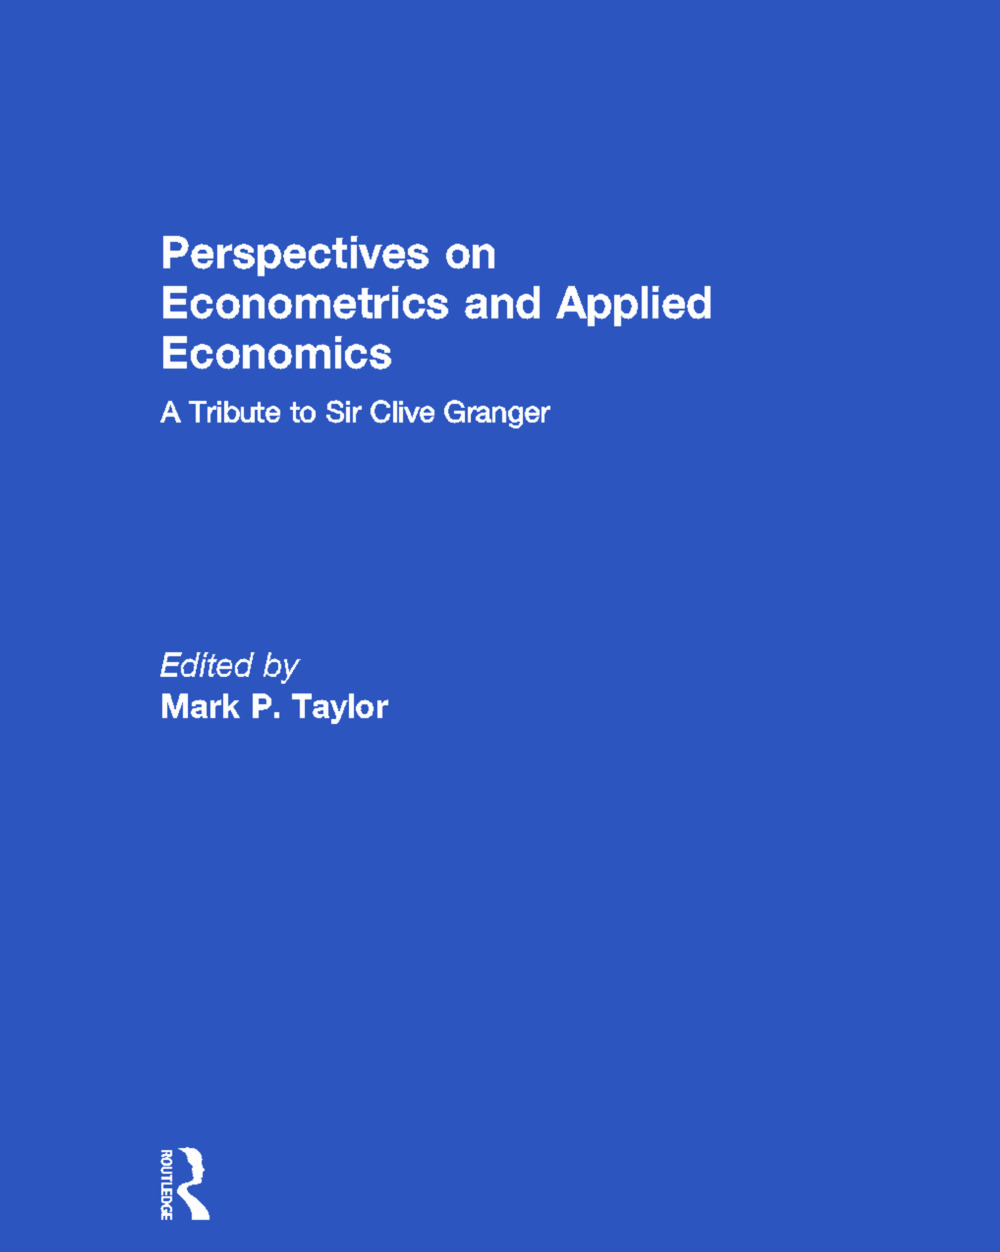 Perspectives on Econometrics and Applied Economics: A Tribute to Sir Clive Granger (Hardback) book cover